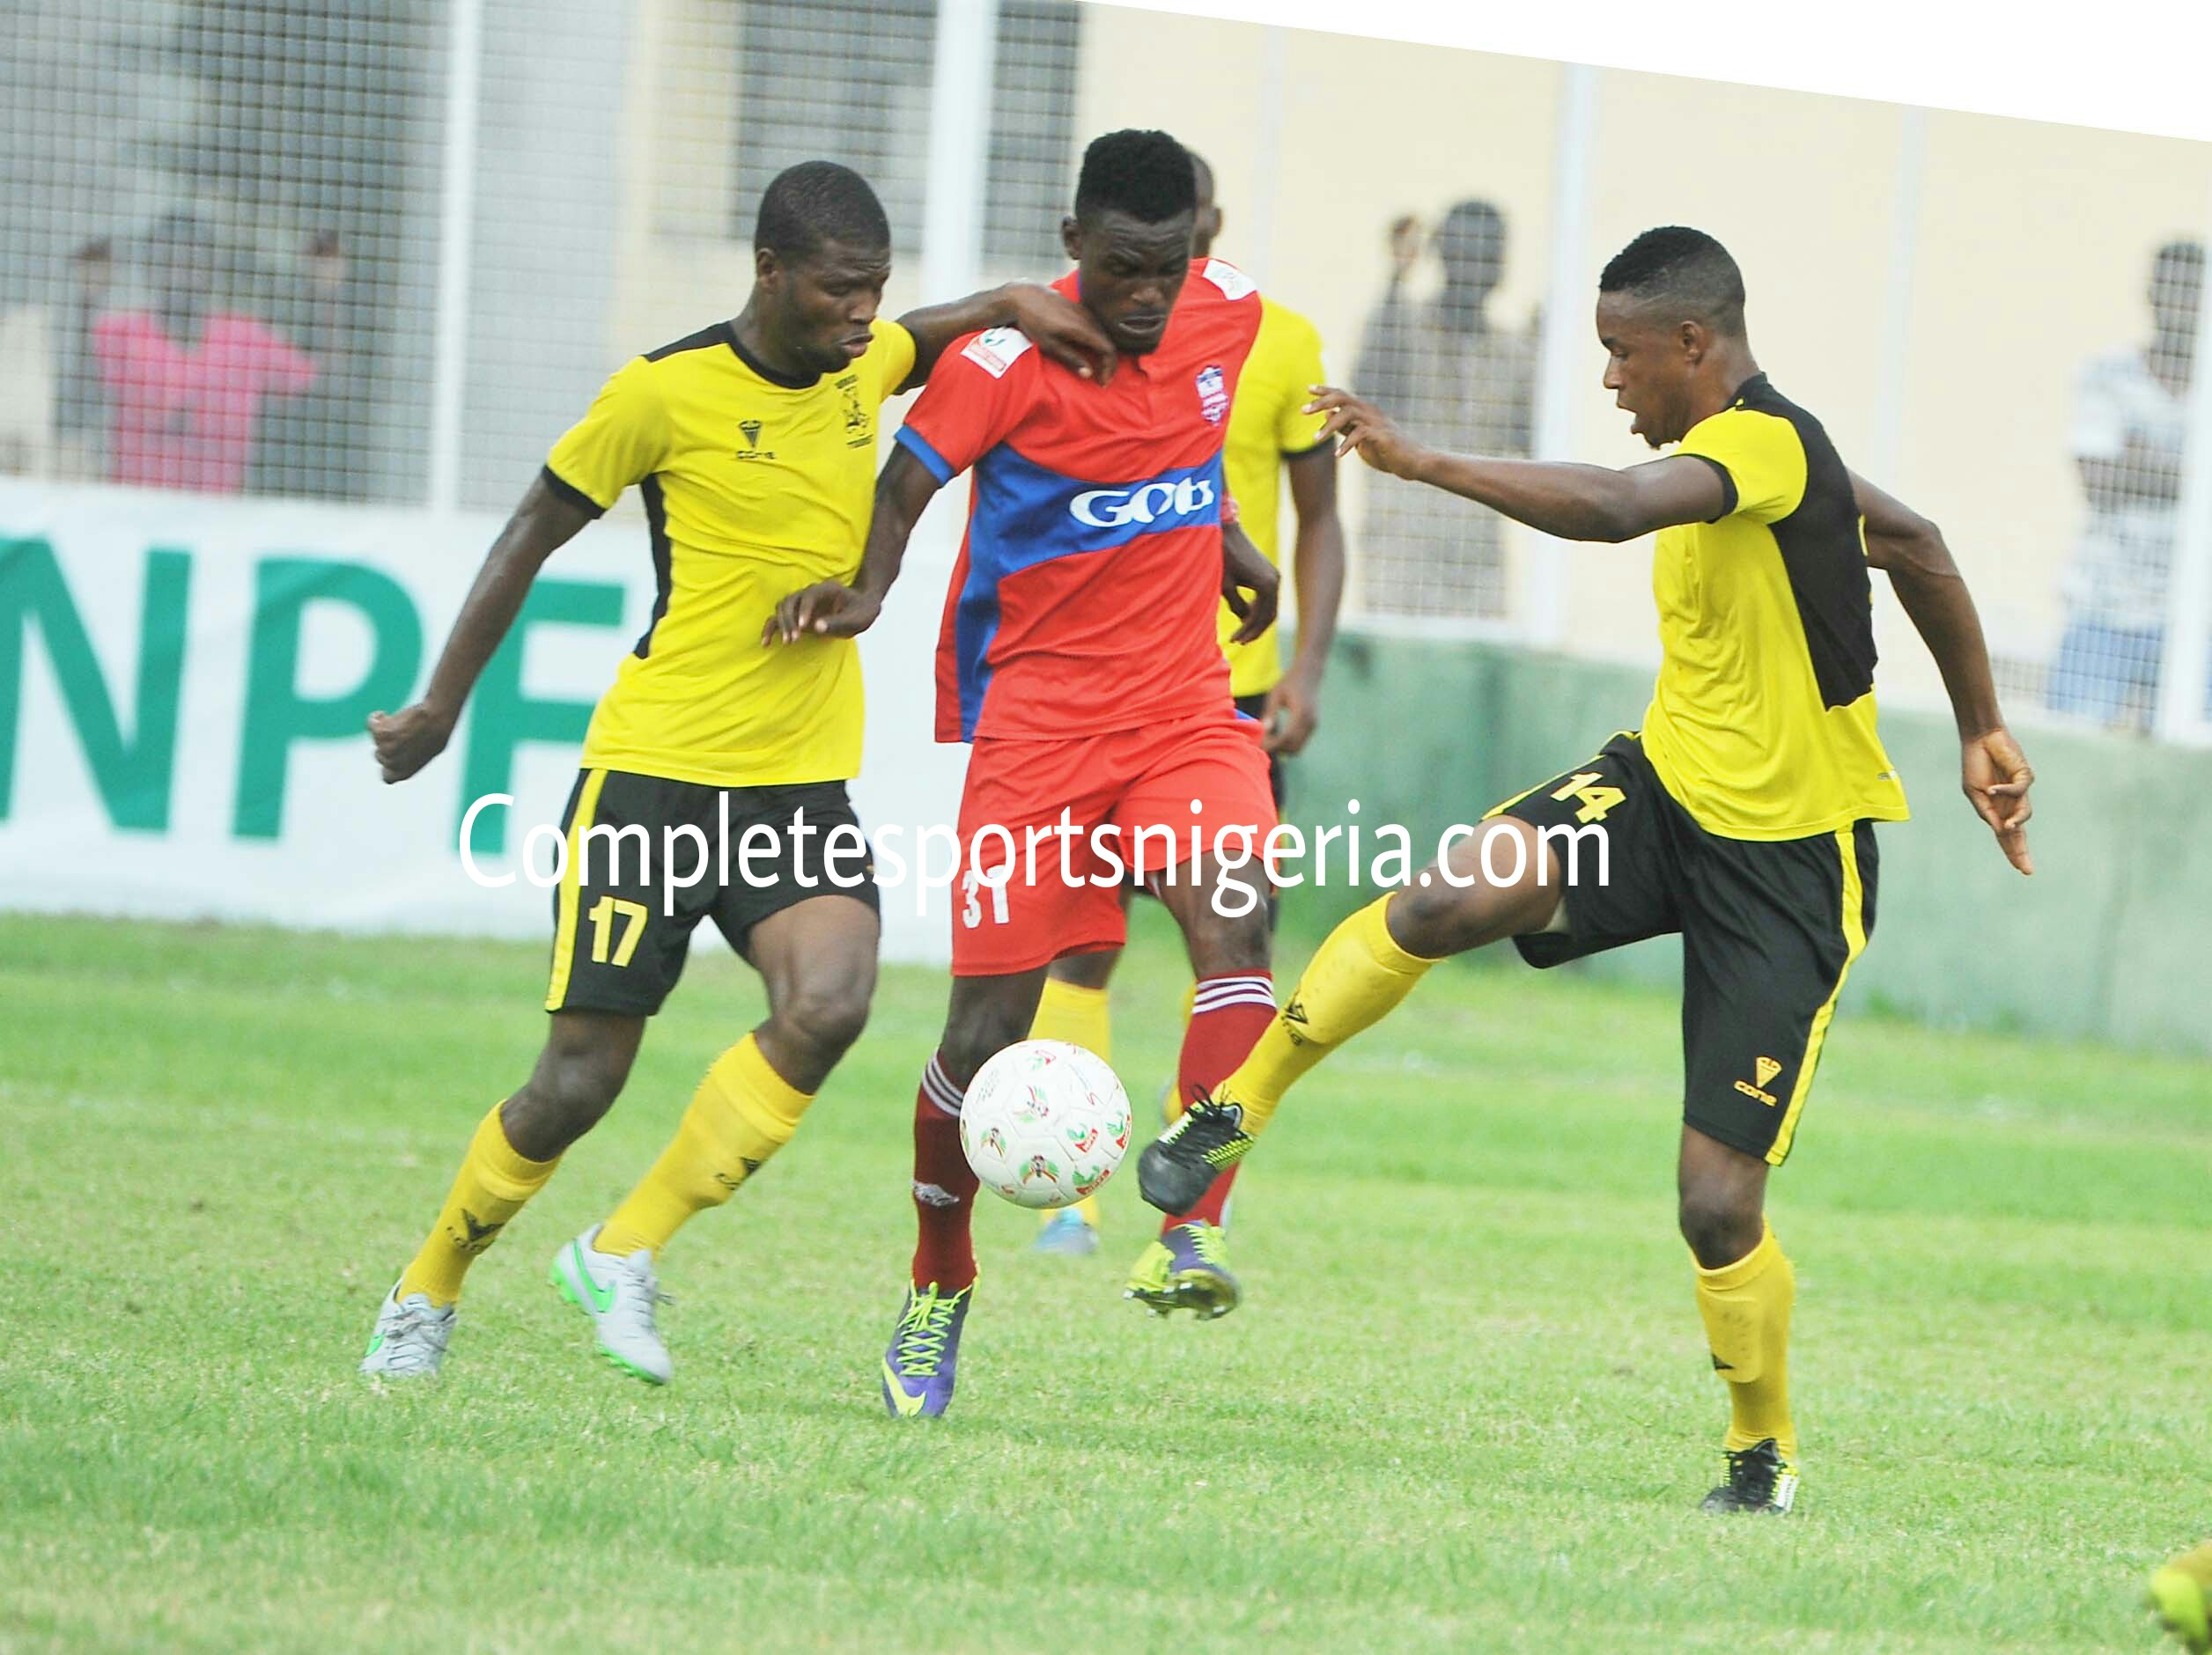 NPFL: Wikki Stay Top, Rangers Shock Heartland, Enyimba Lose Again